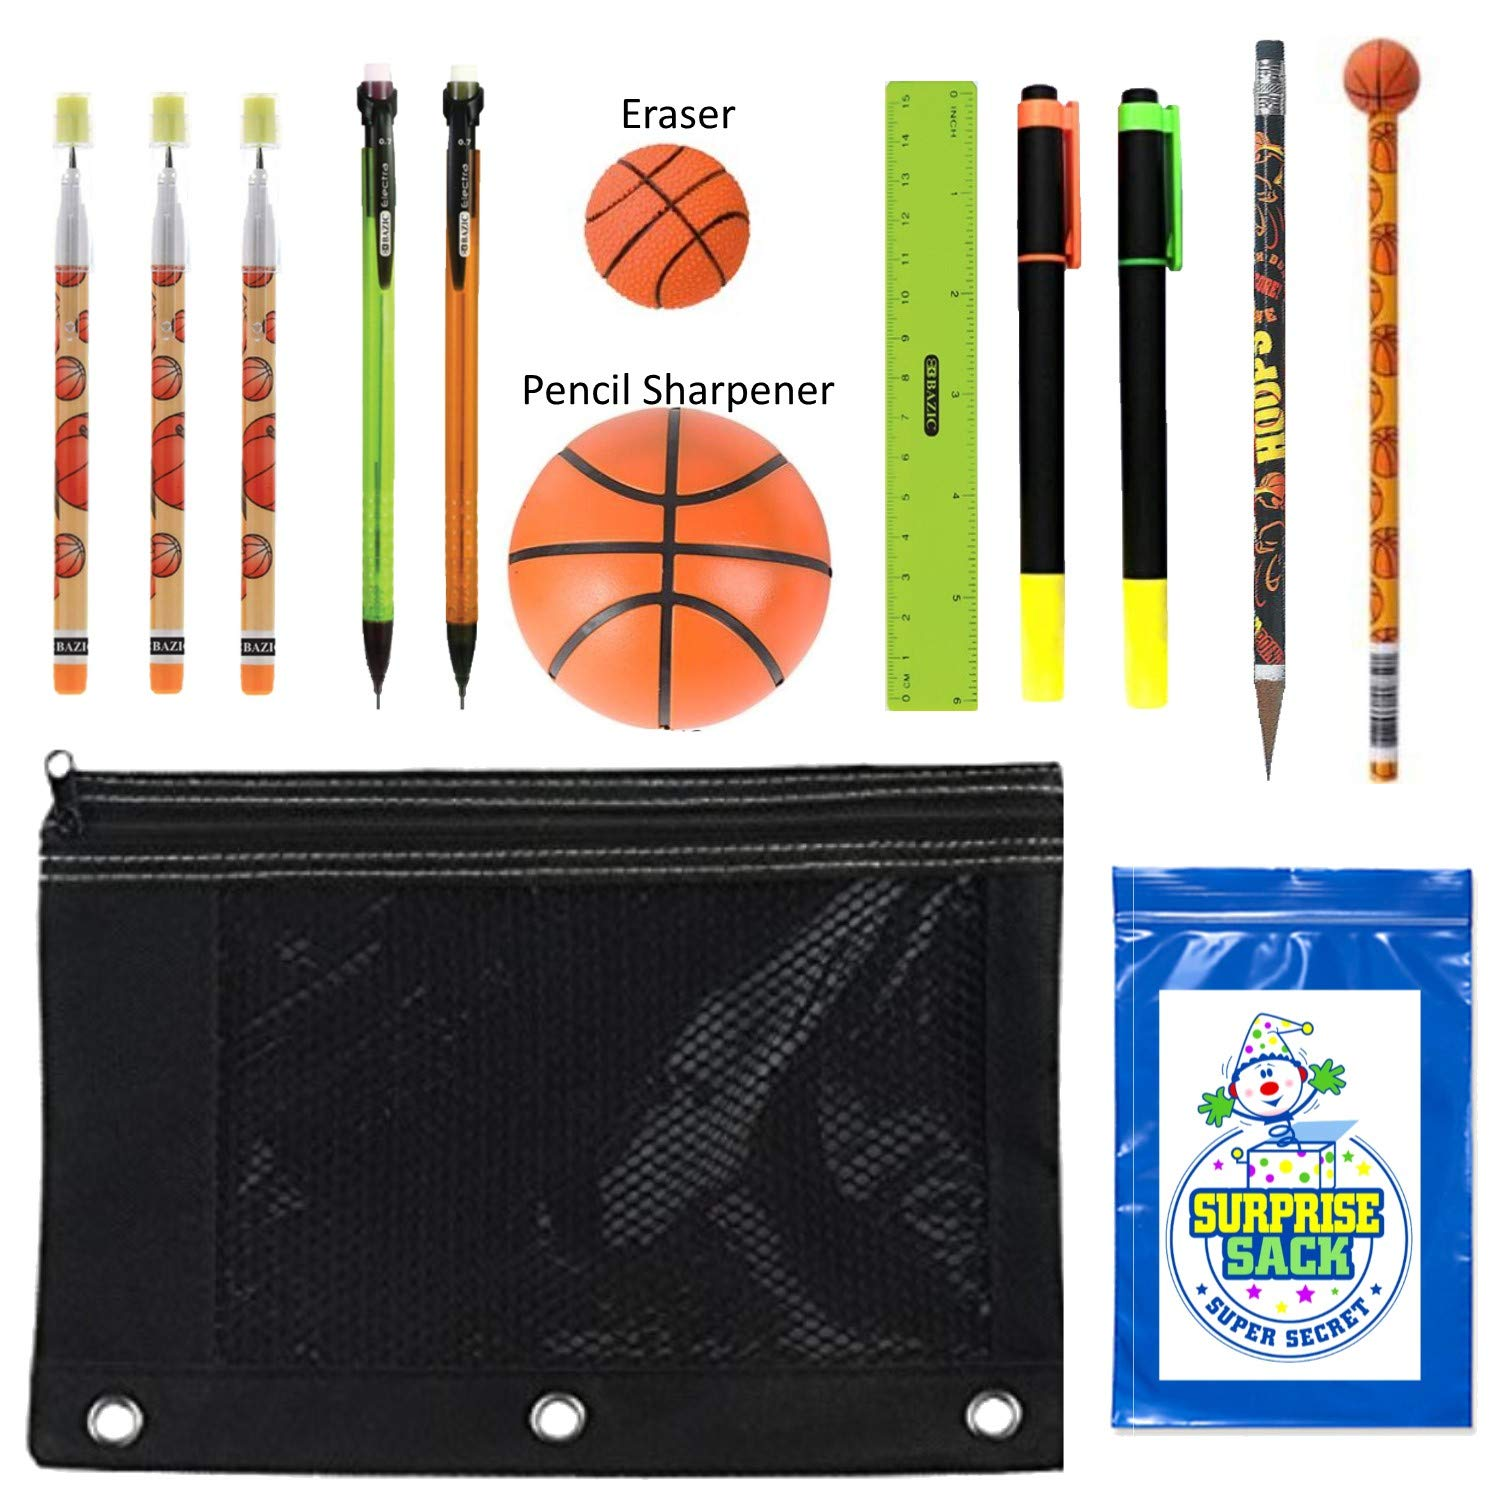 Kids Sports Themed Stationary Accessories-Sports Pencils, Erasers & More - Unique Back to School Supplies, Stocking Stuffers, Easter Basket Fillers (Green Pouch-Football) Raymond Geddes & Bazic